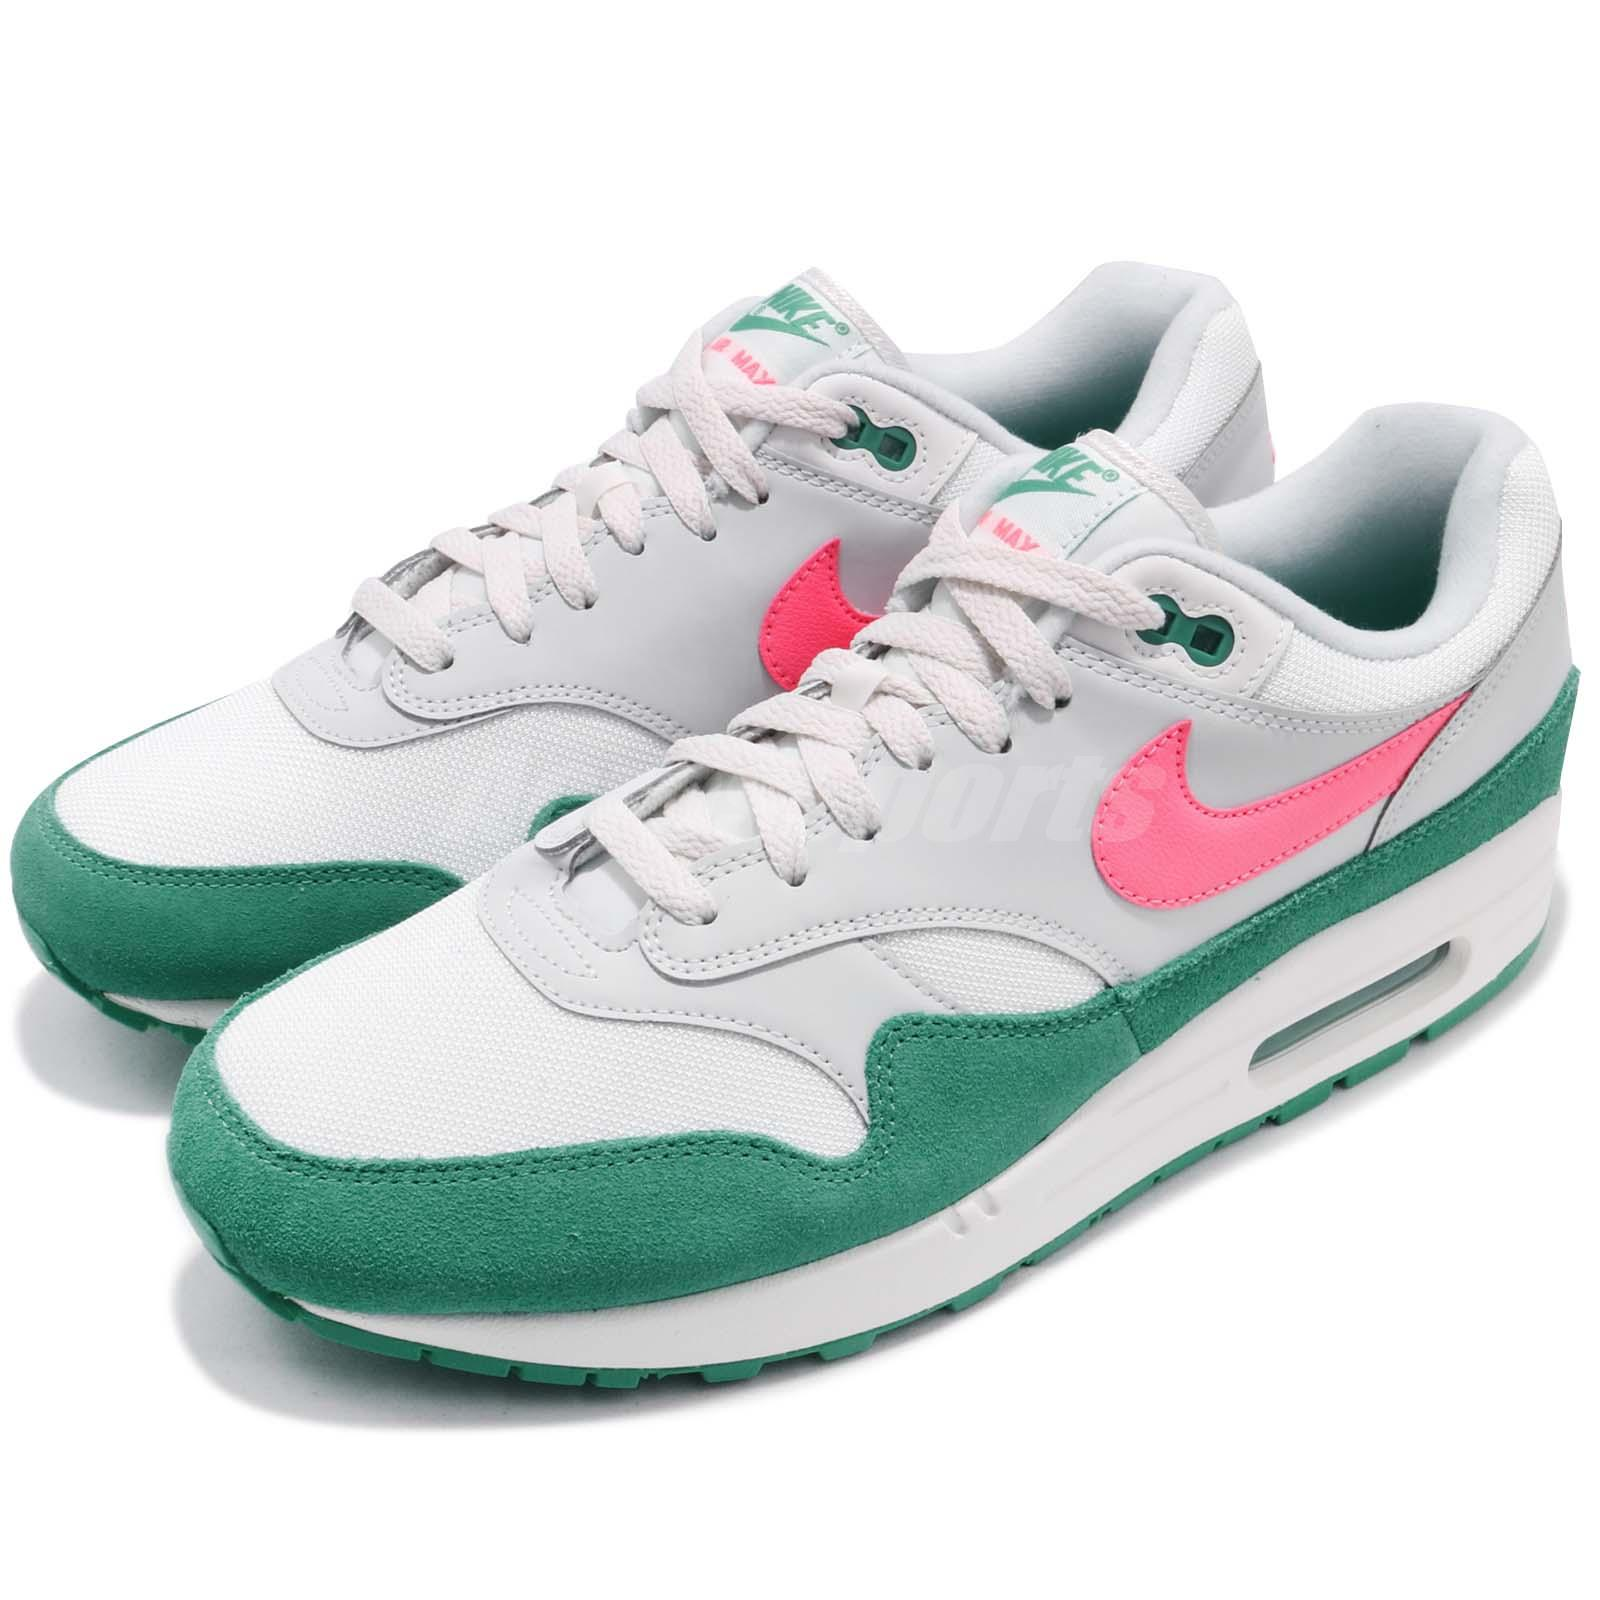 sports shoes 89125 6a7fb Details about Nike Air Max 1 Watermelon South Beach Green Men Running Shoes  Sneaker AH8145-106